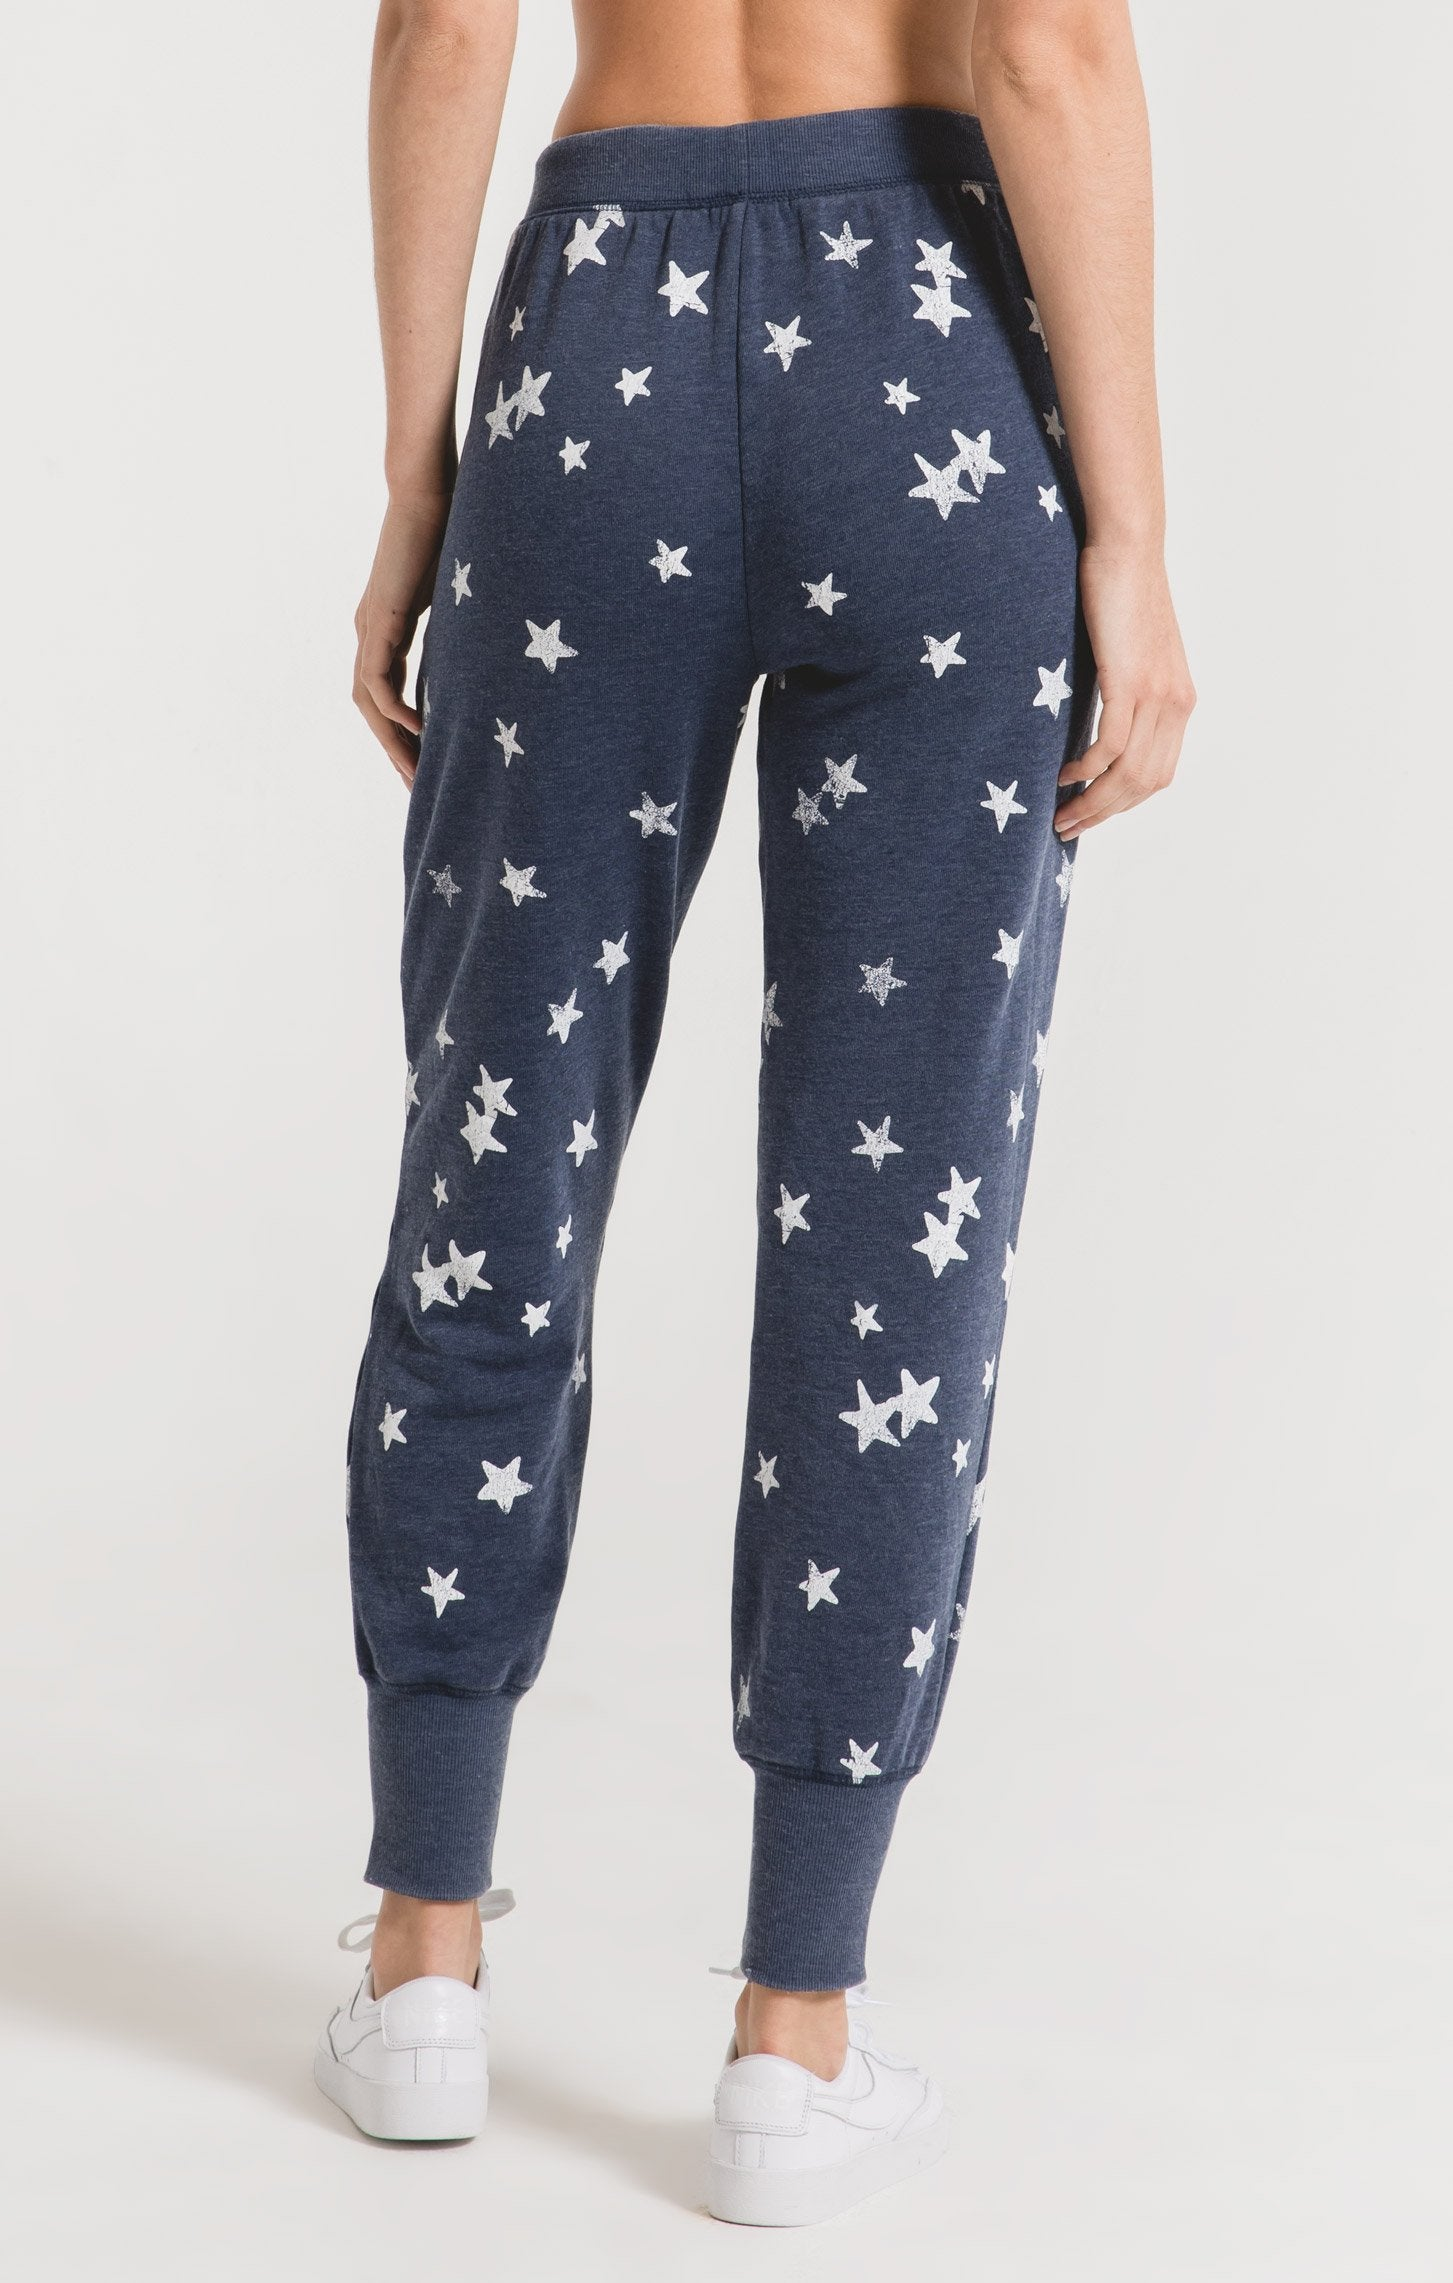 Pants Distressed Star Jogger Black Iris Combo